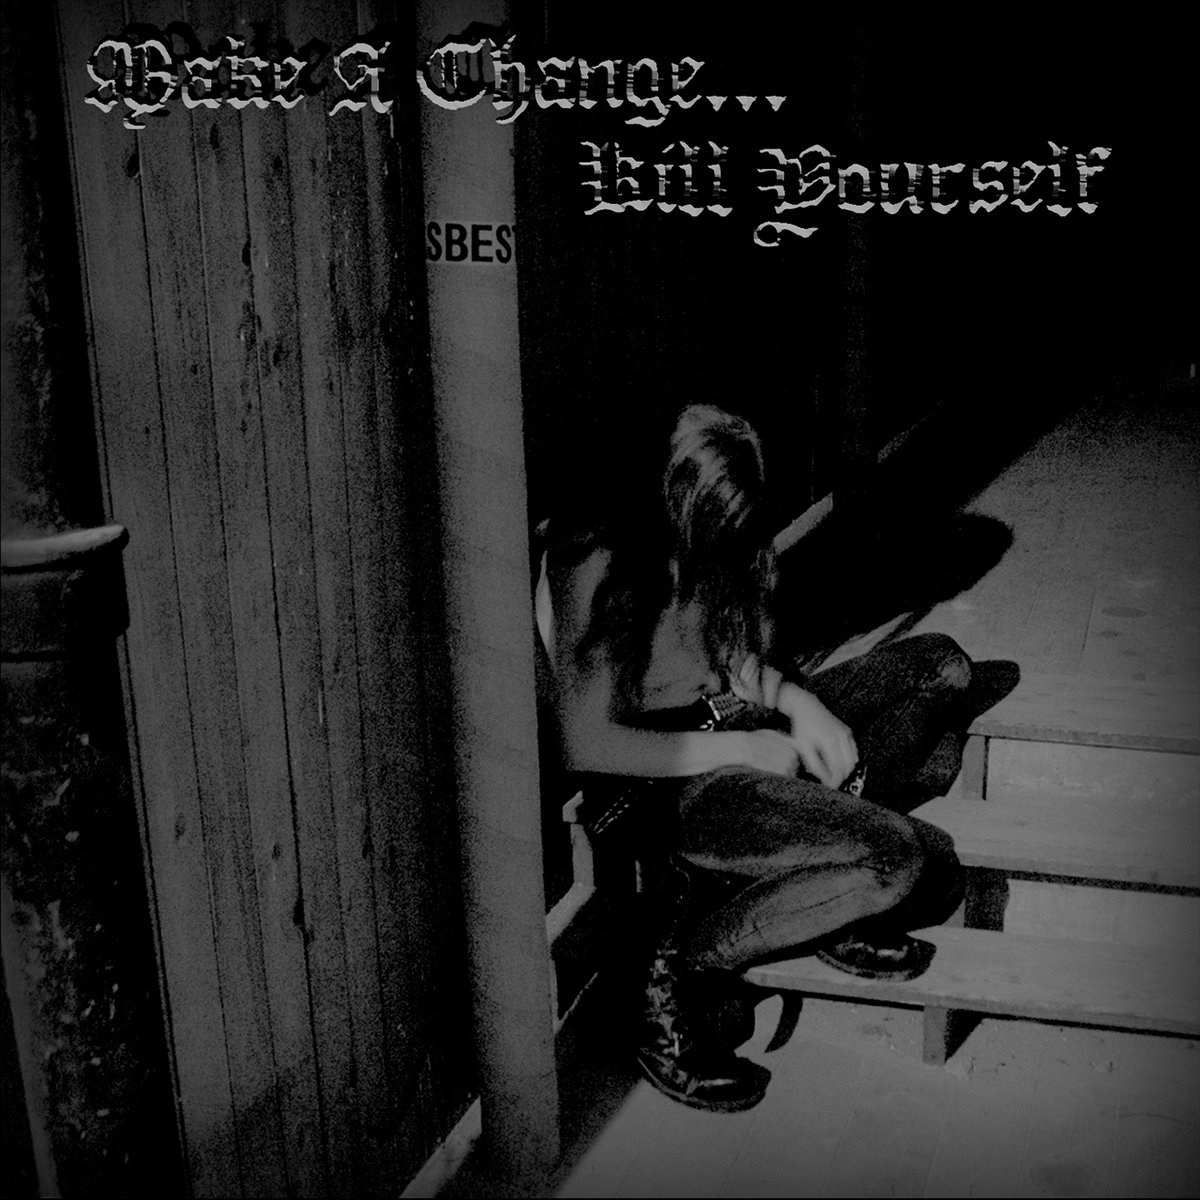 Review for Make a Change... Kill Yourself - Make a Change... Kill Yourself